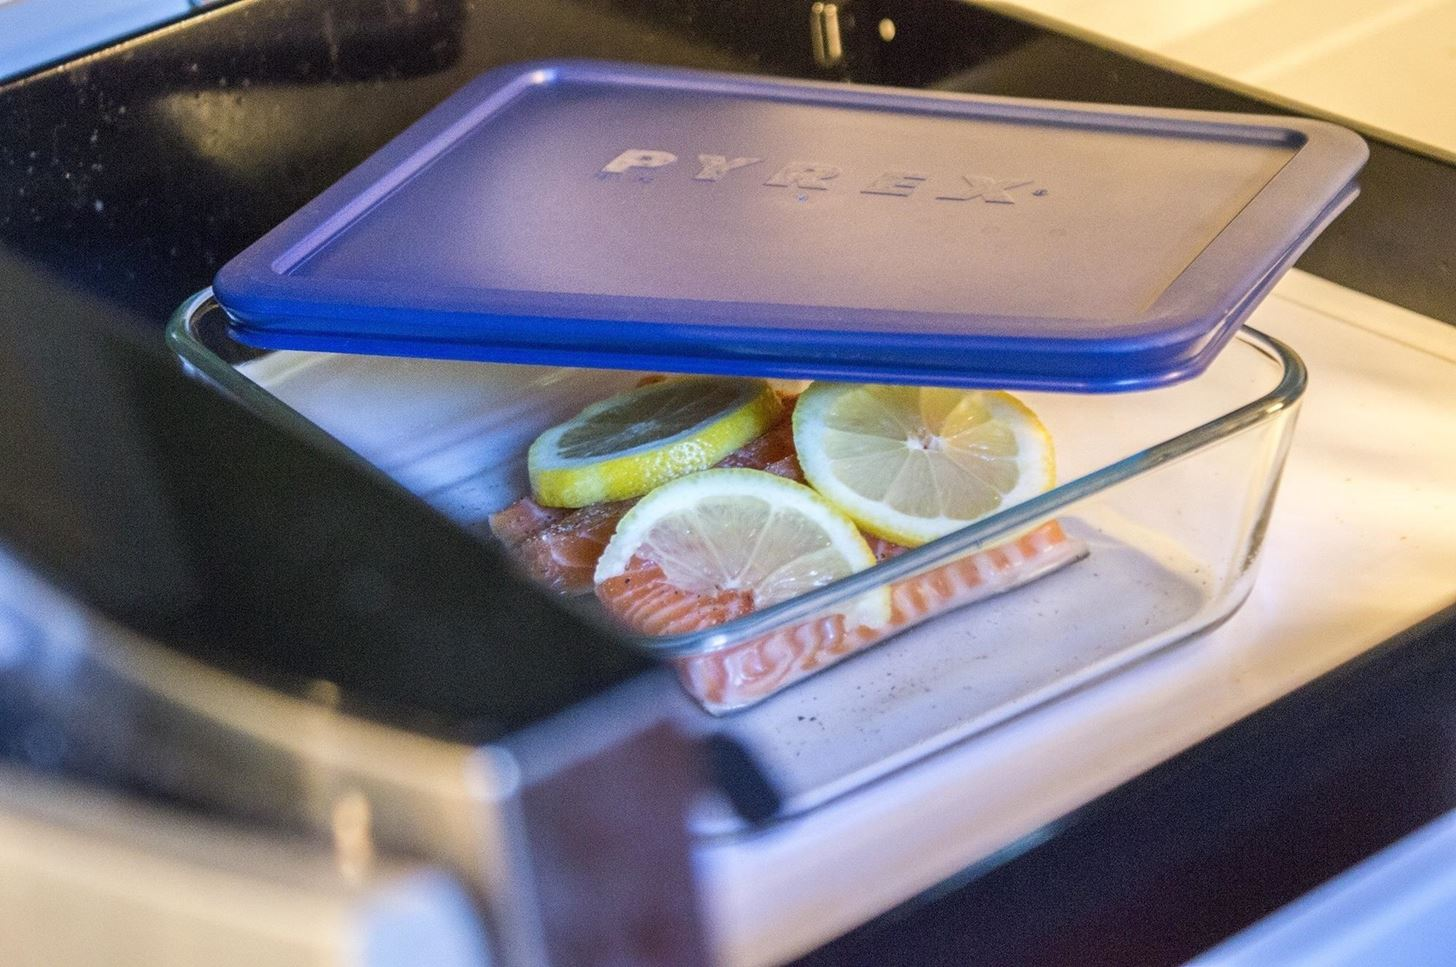 Skip the Oven—Microwave Your Fish